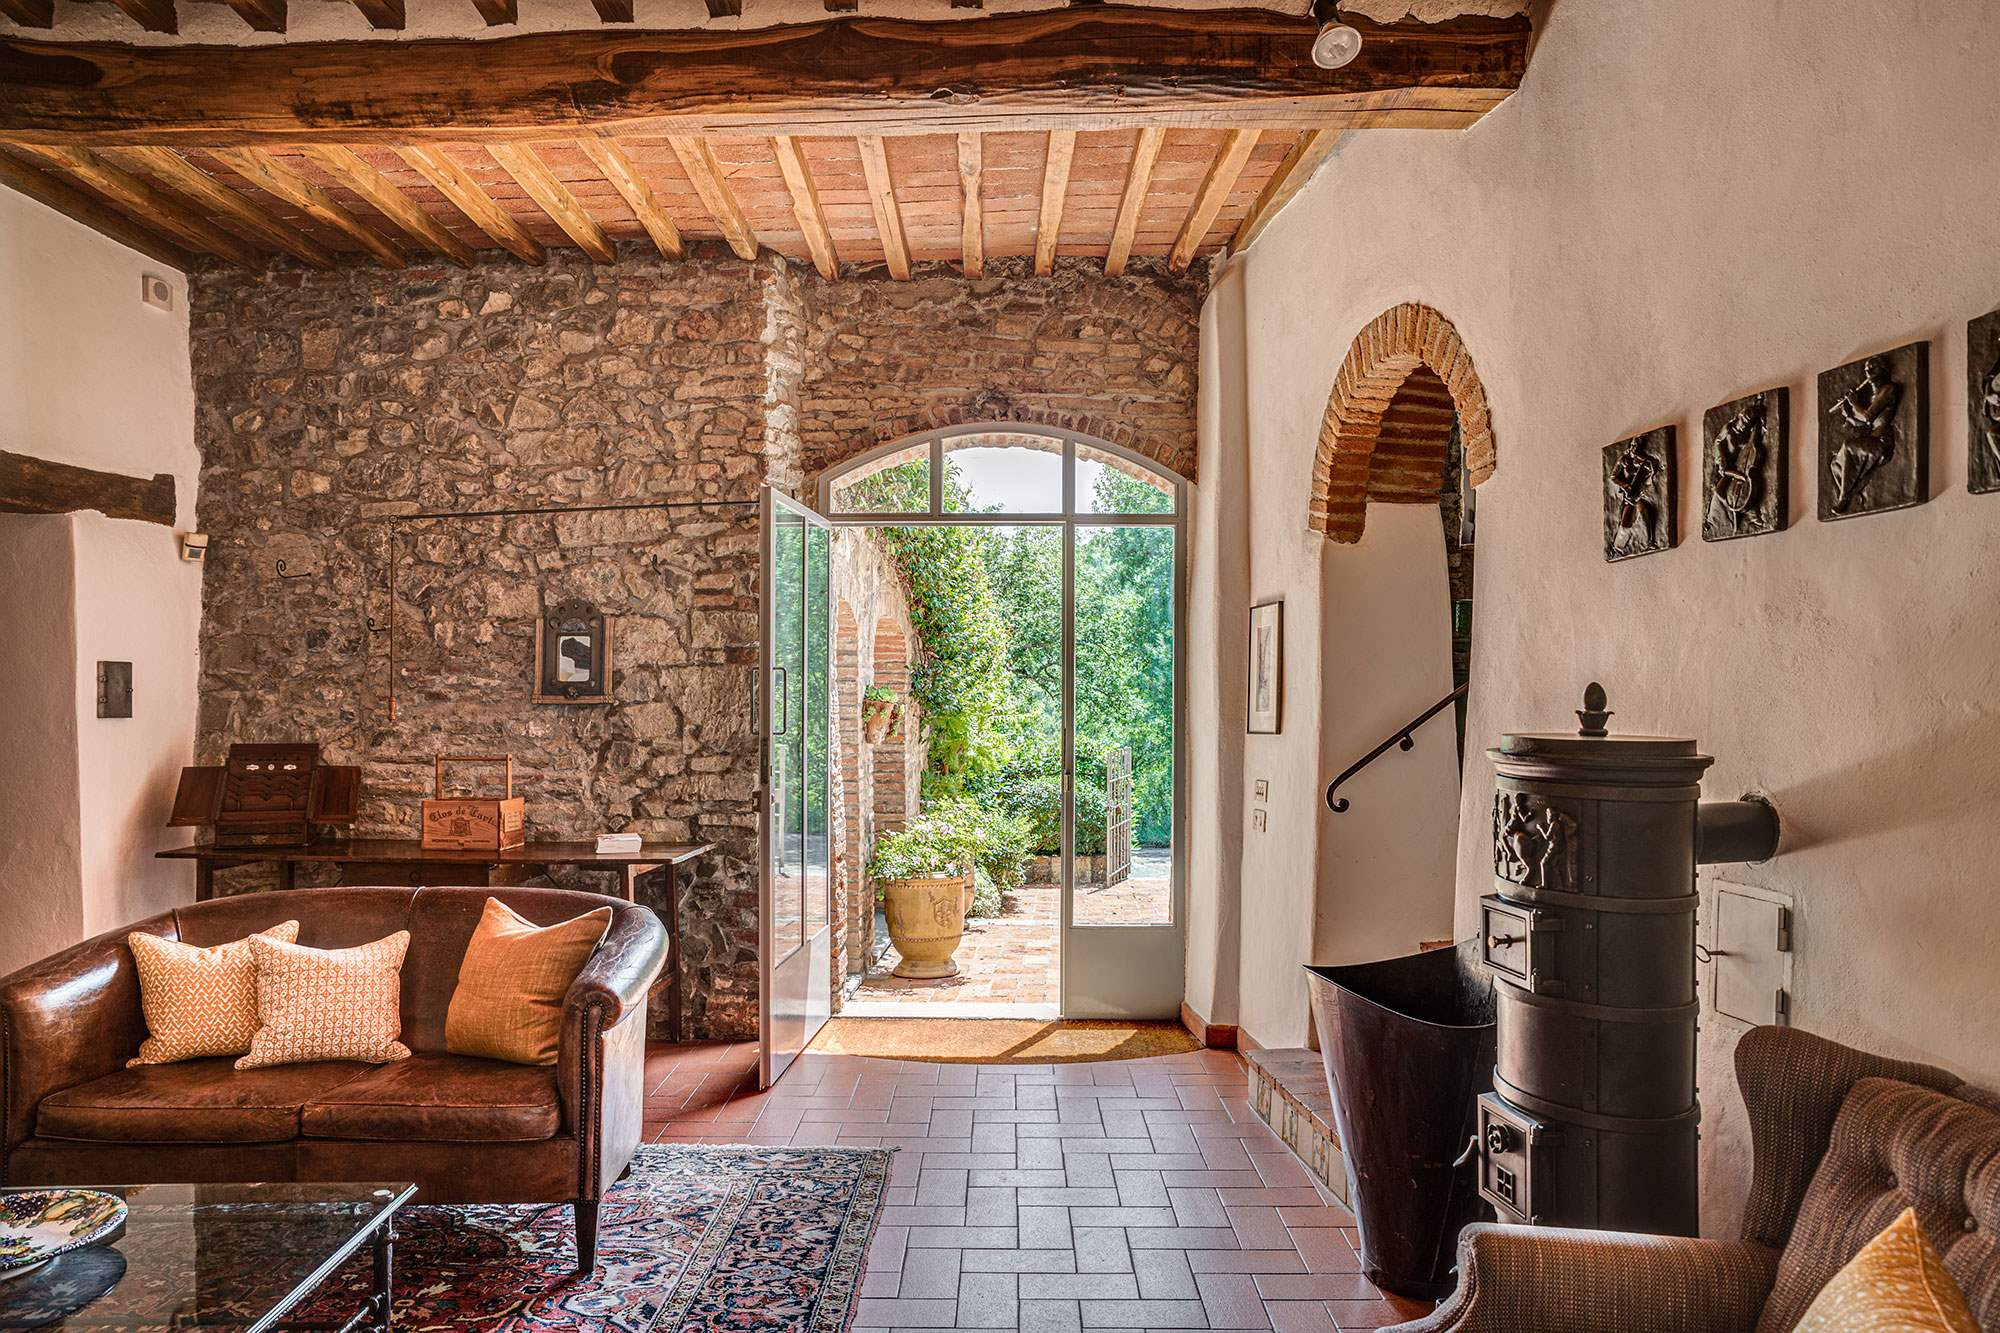 Villa Claudia, 5 Bedroom rate, 5 bedroom villa in Chianti & Countryside, Tuscany Photo #12